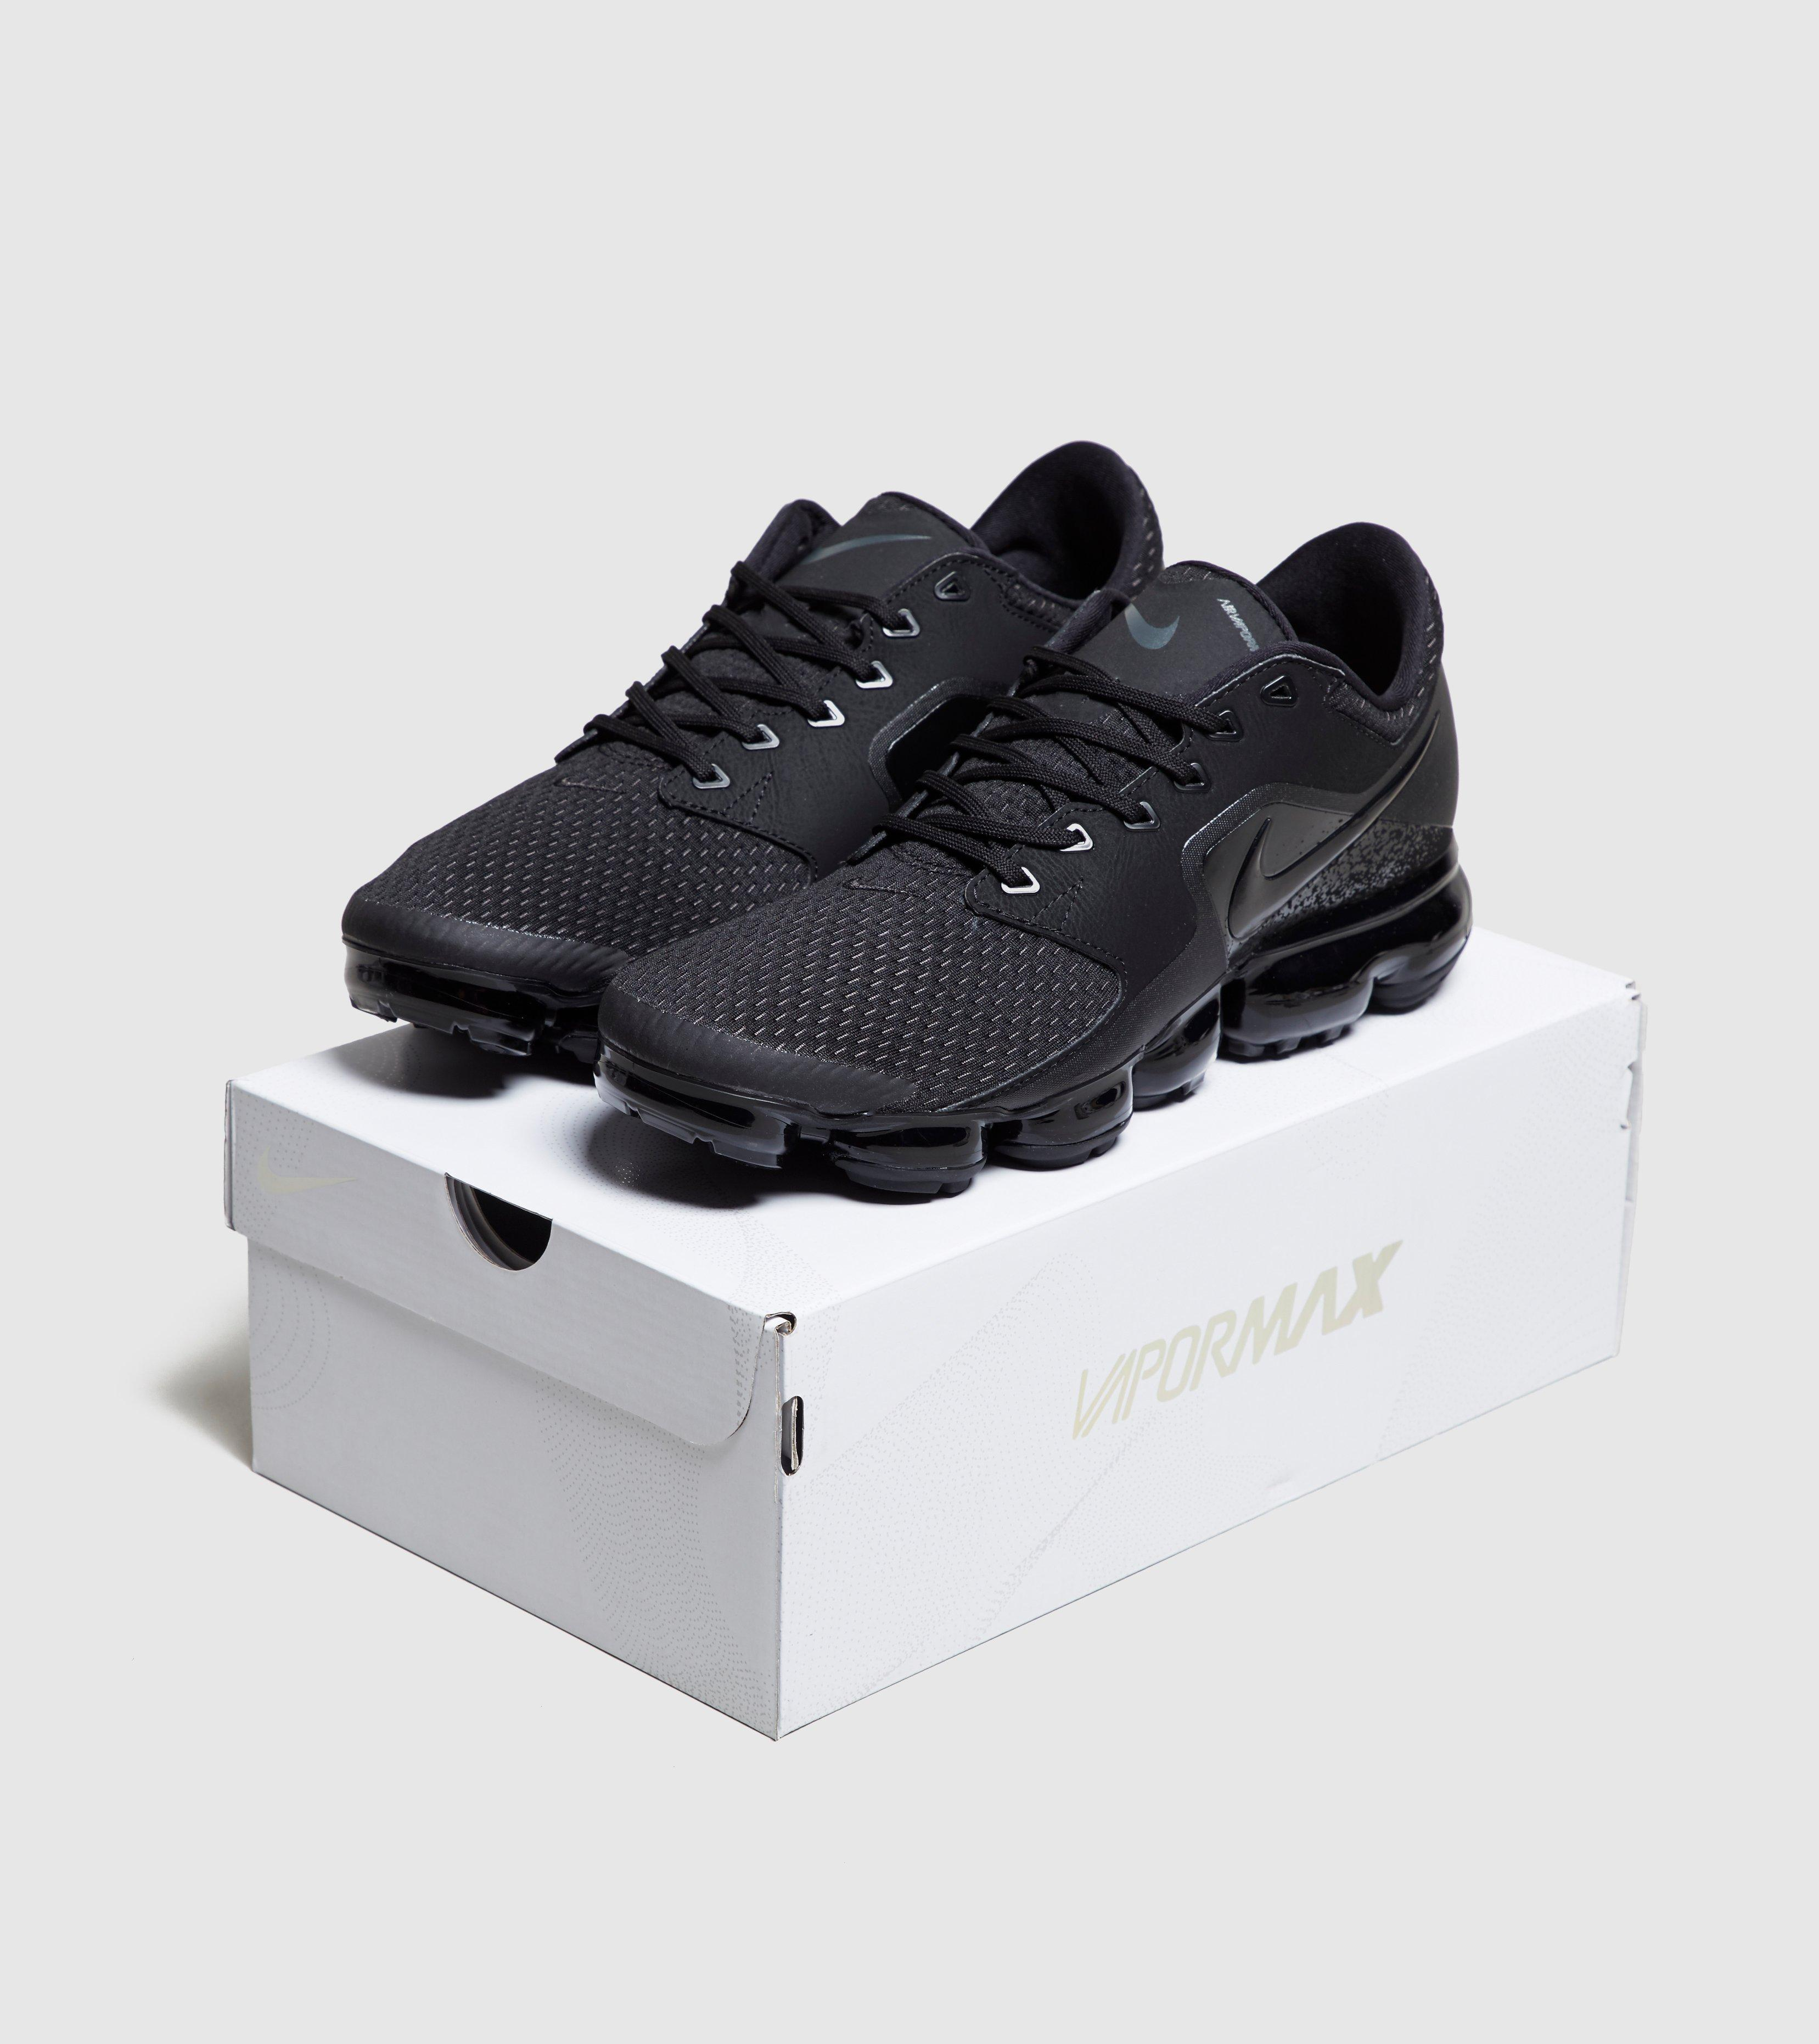 new arrival f9639 c4485 Lyst - Nike Air Vapormax Mesh in Black for Men